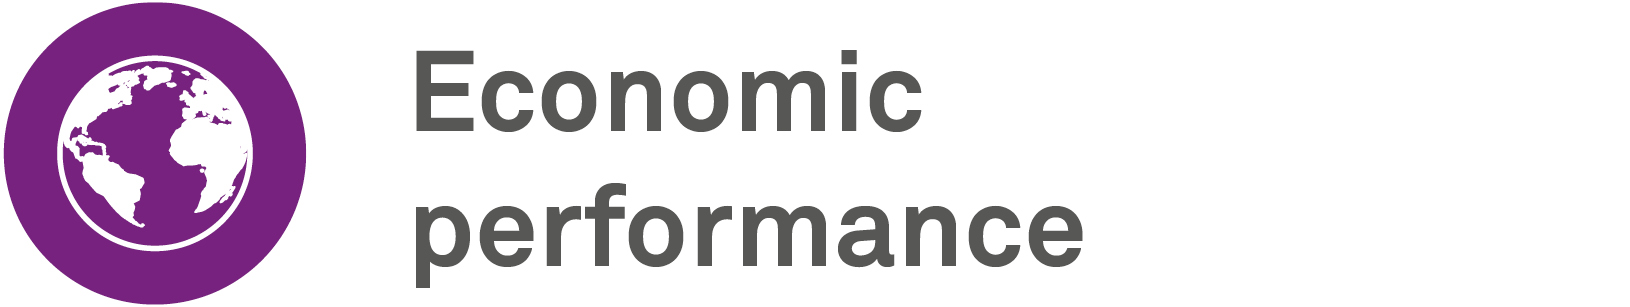 Economic performance gri icon